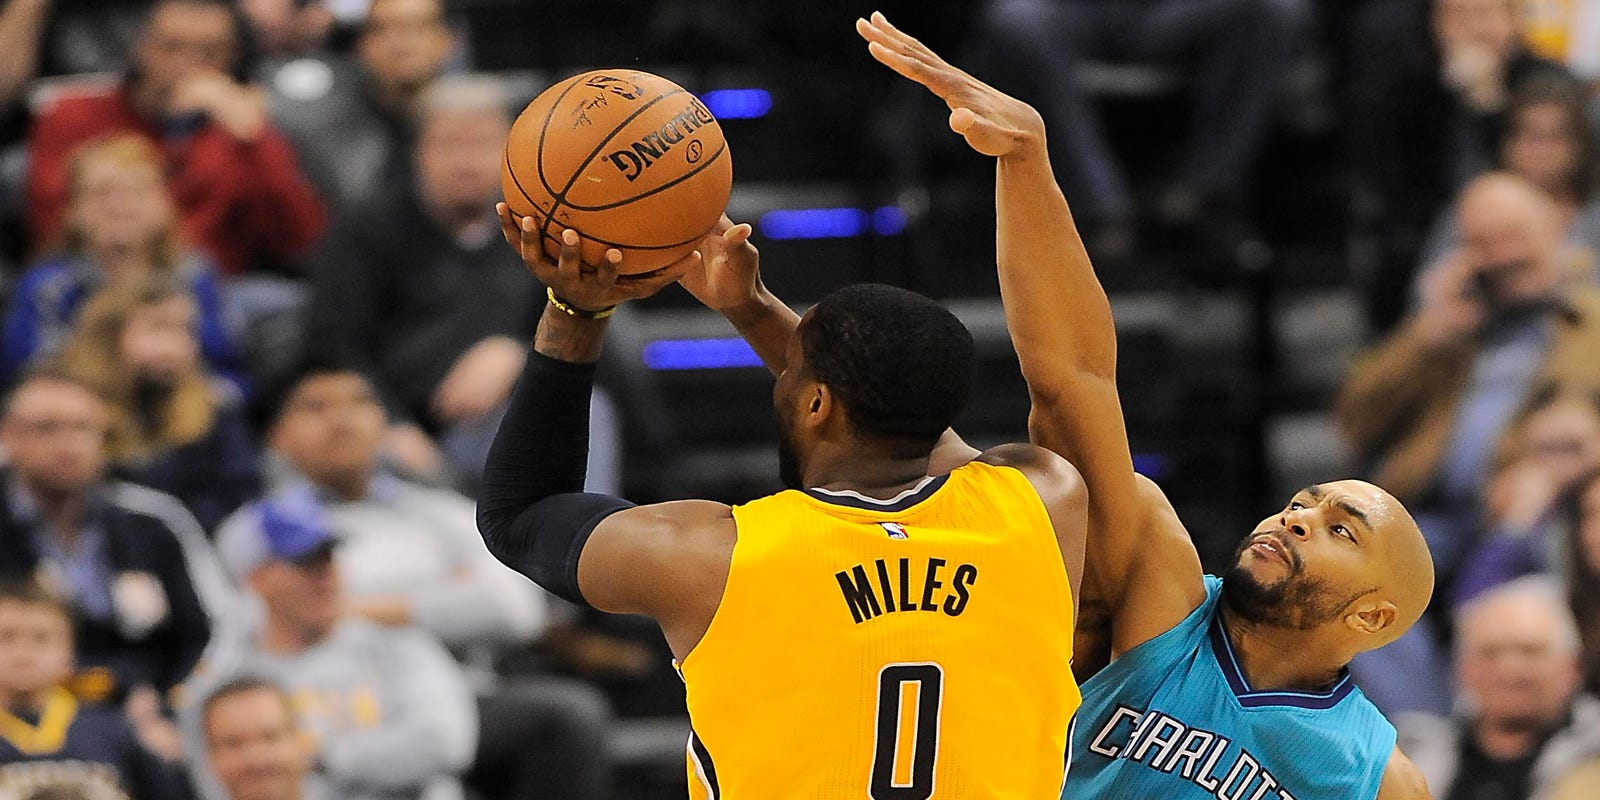 Stuckey scores 15 to lead Pacers past Hornets 93-74 ad606029e